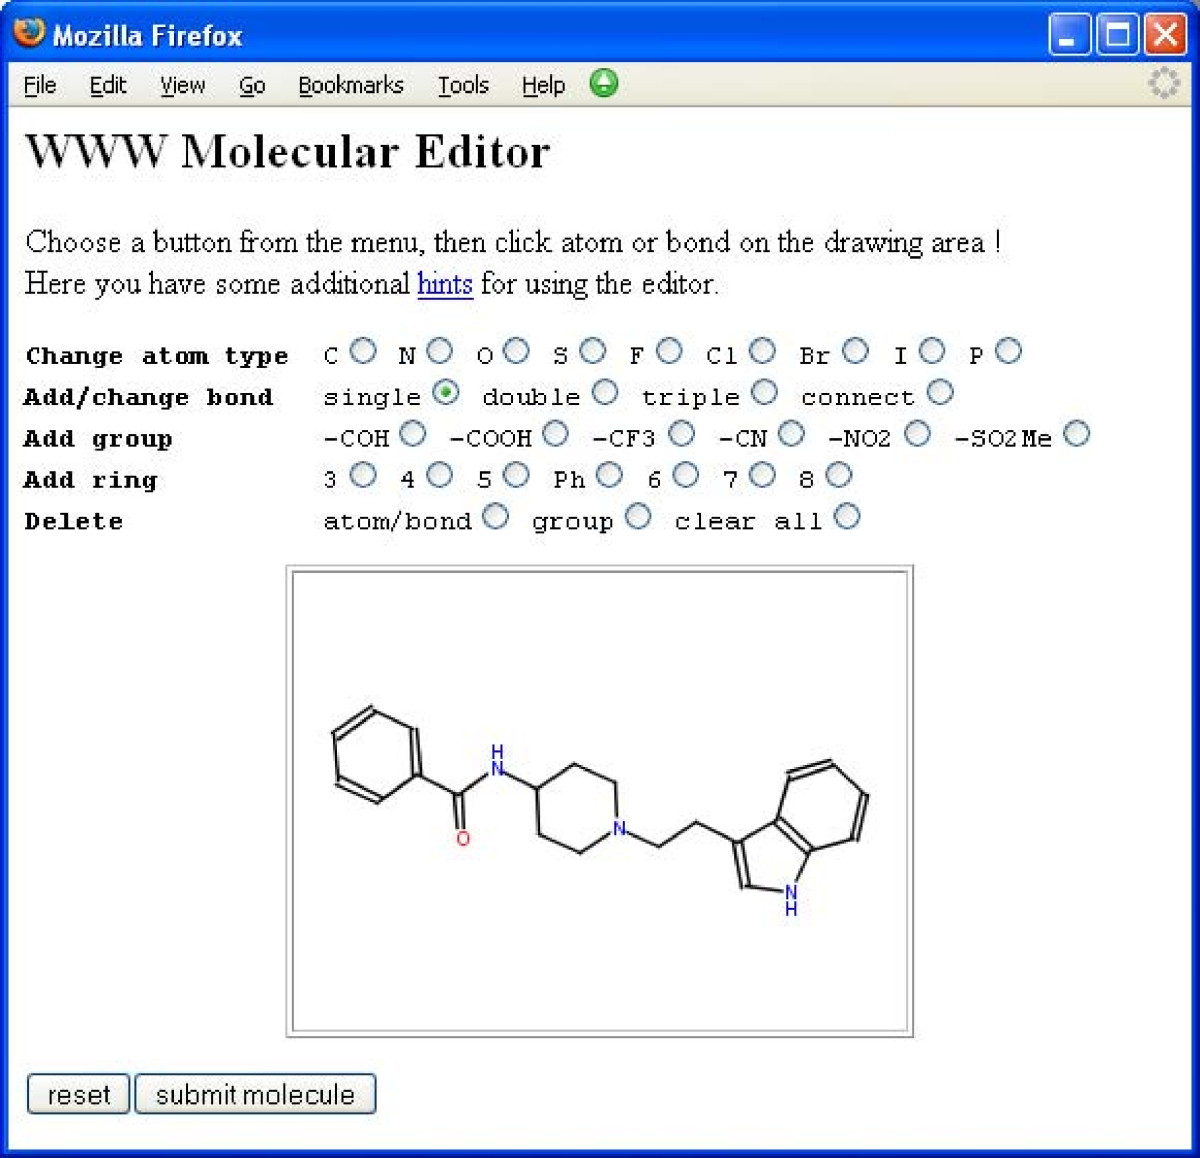 http://static-content.springer.com/image/art%3A10.1186%2F1758-2946-2-1/MediaObjects/13321_2009_Article_23_Fig2_HTML.jpg